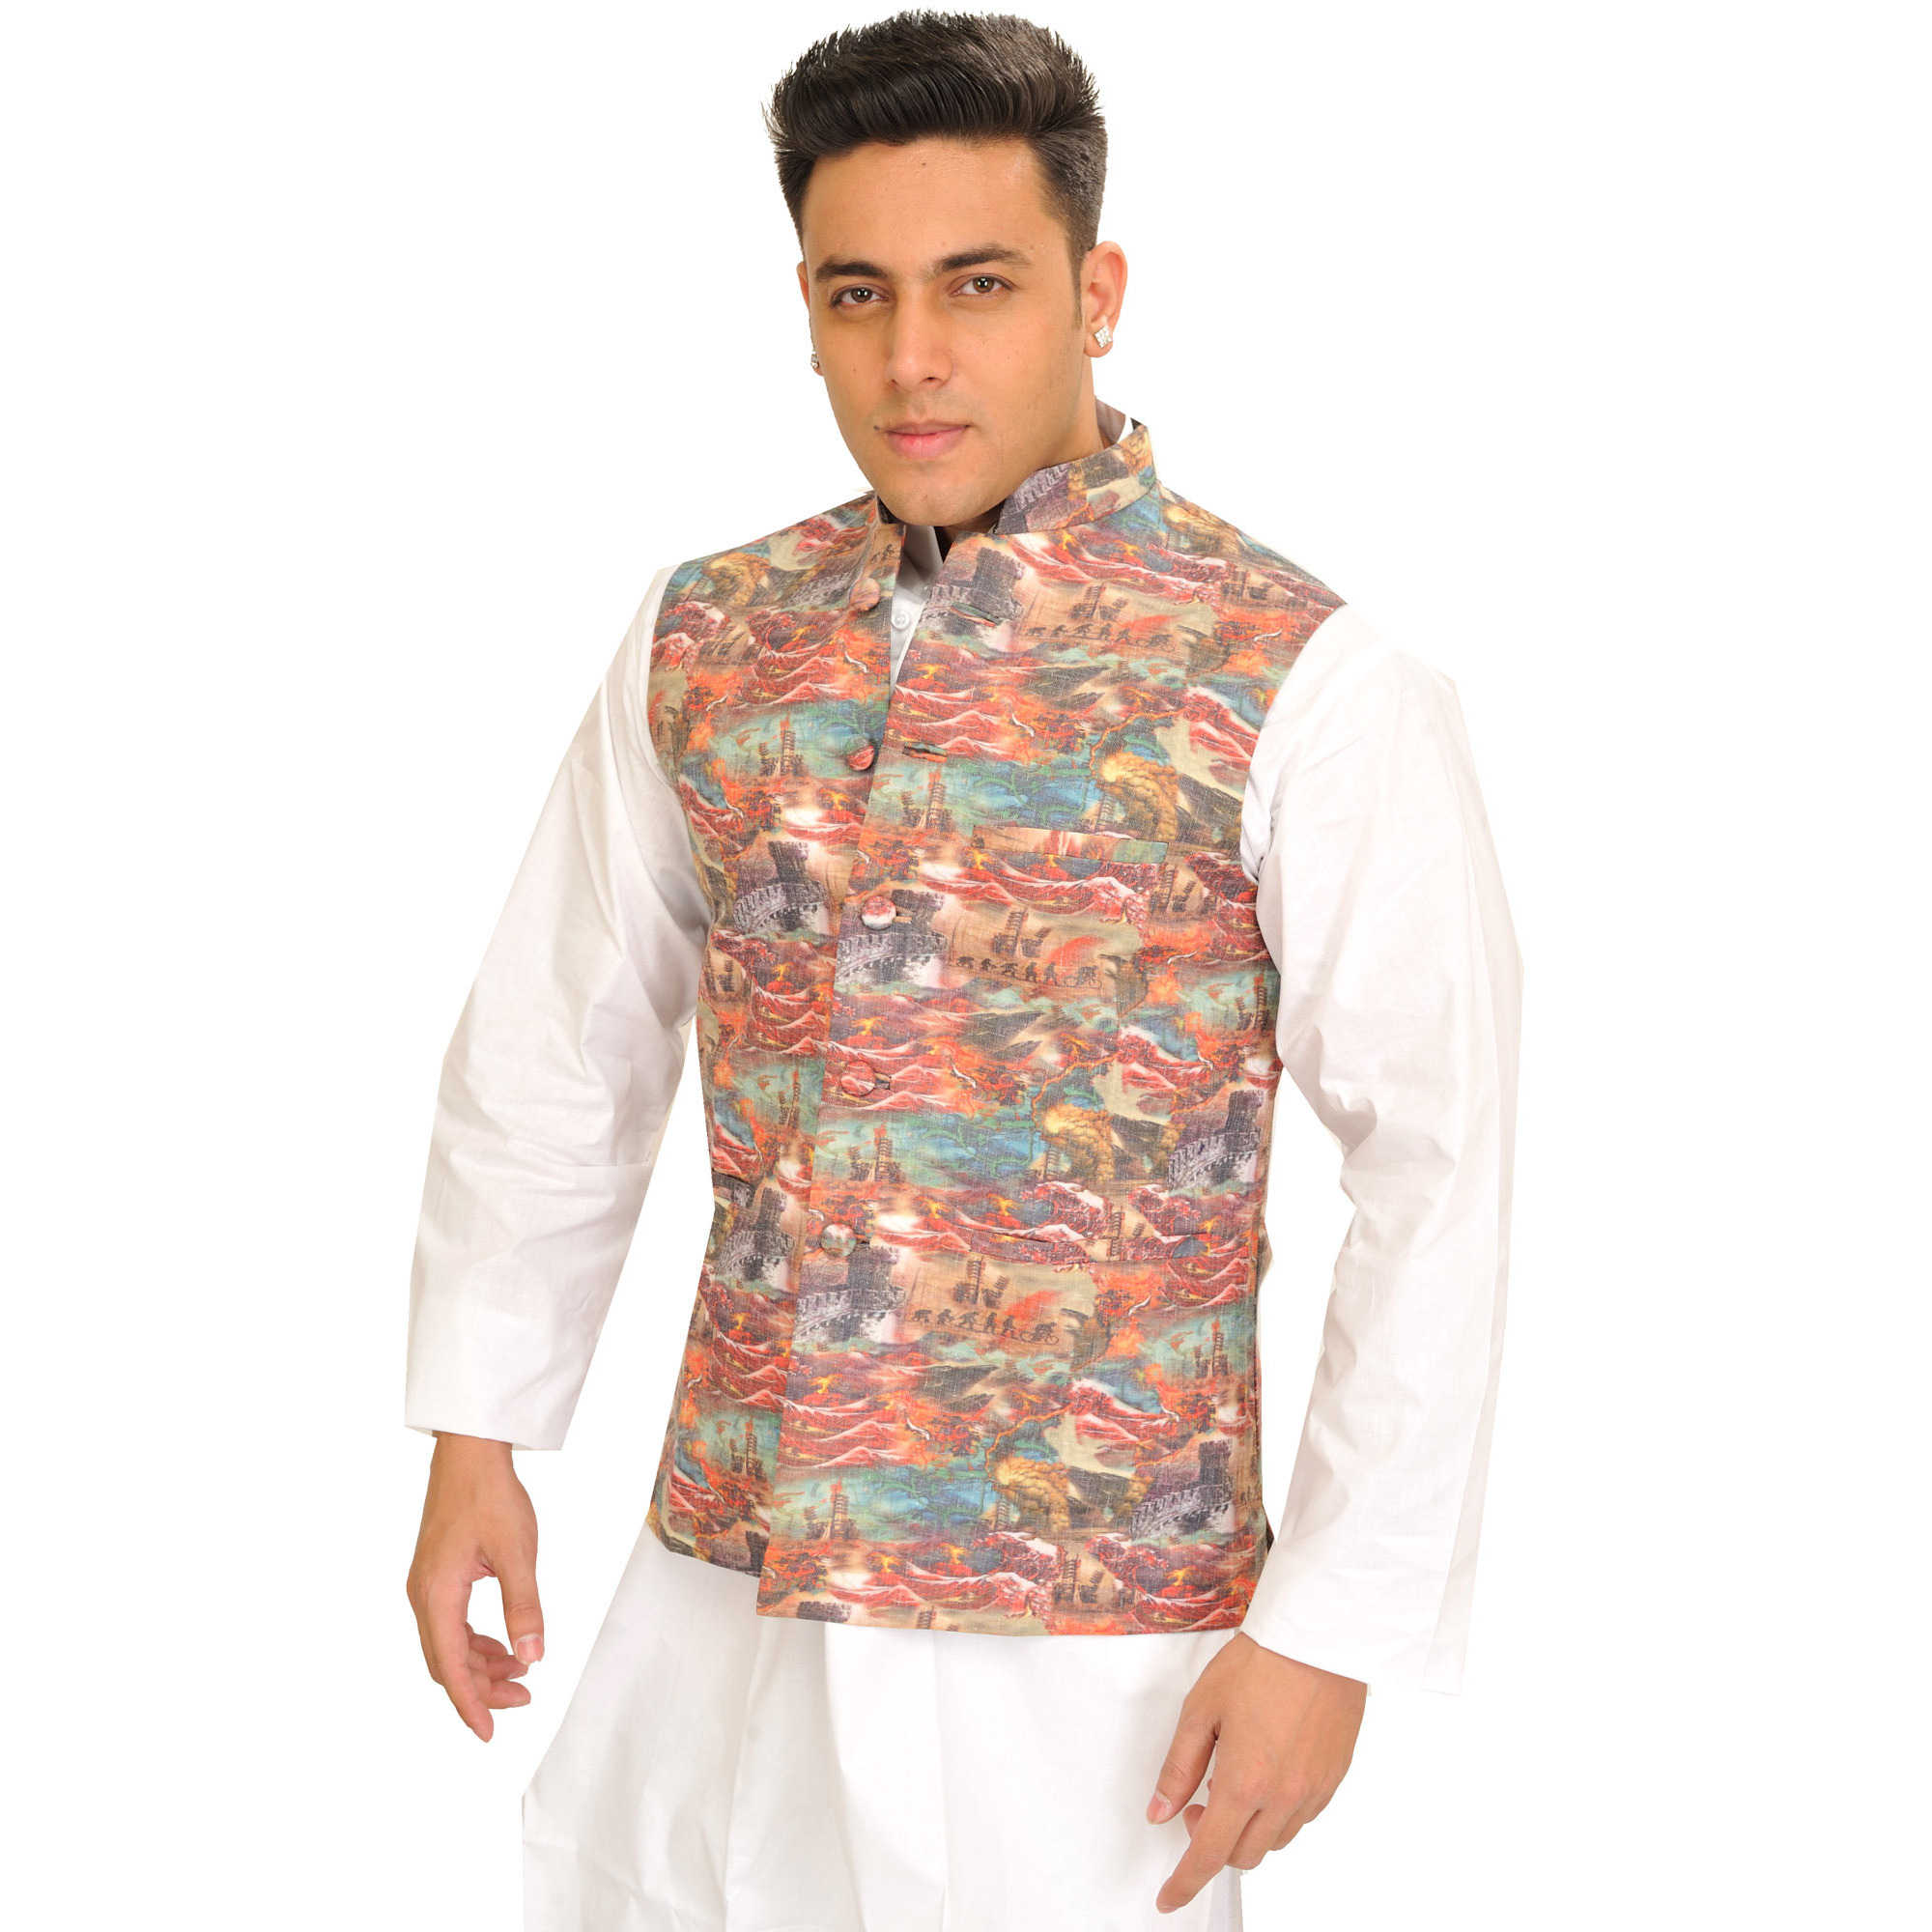 Multicolor Waistcoat with Digital Printed Landscape